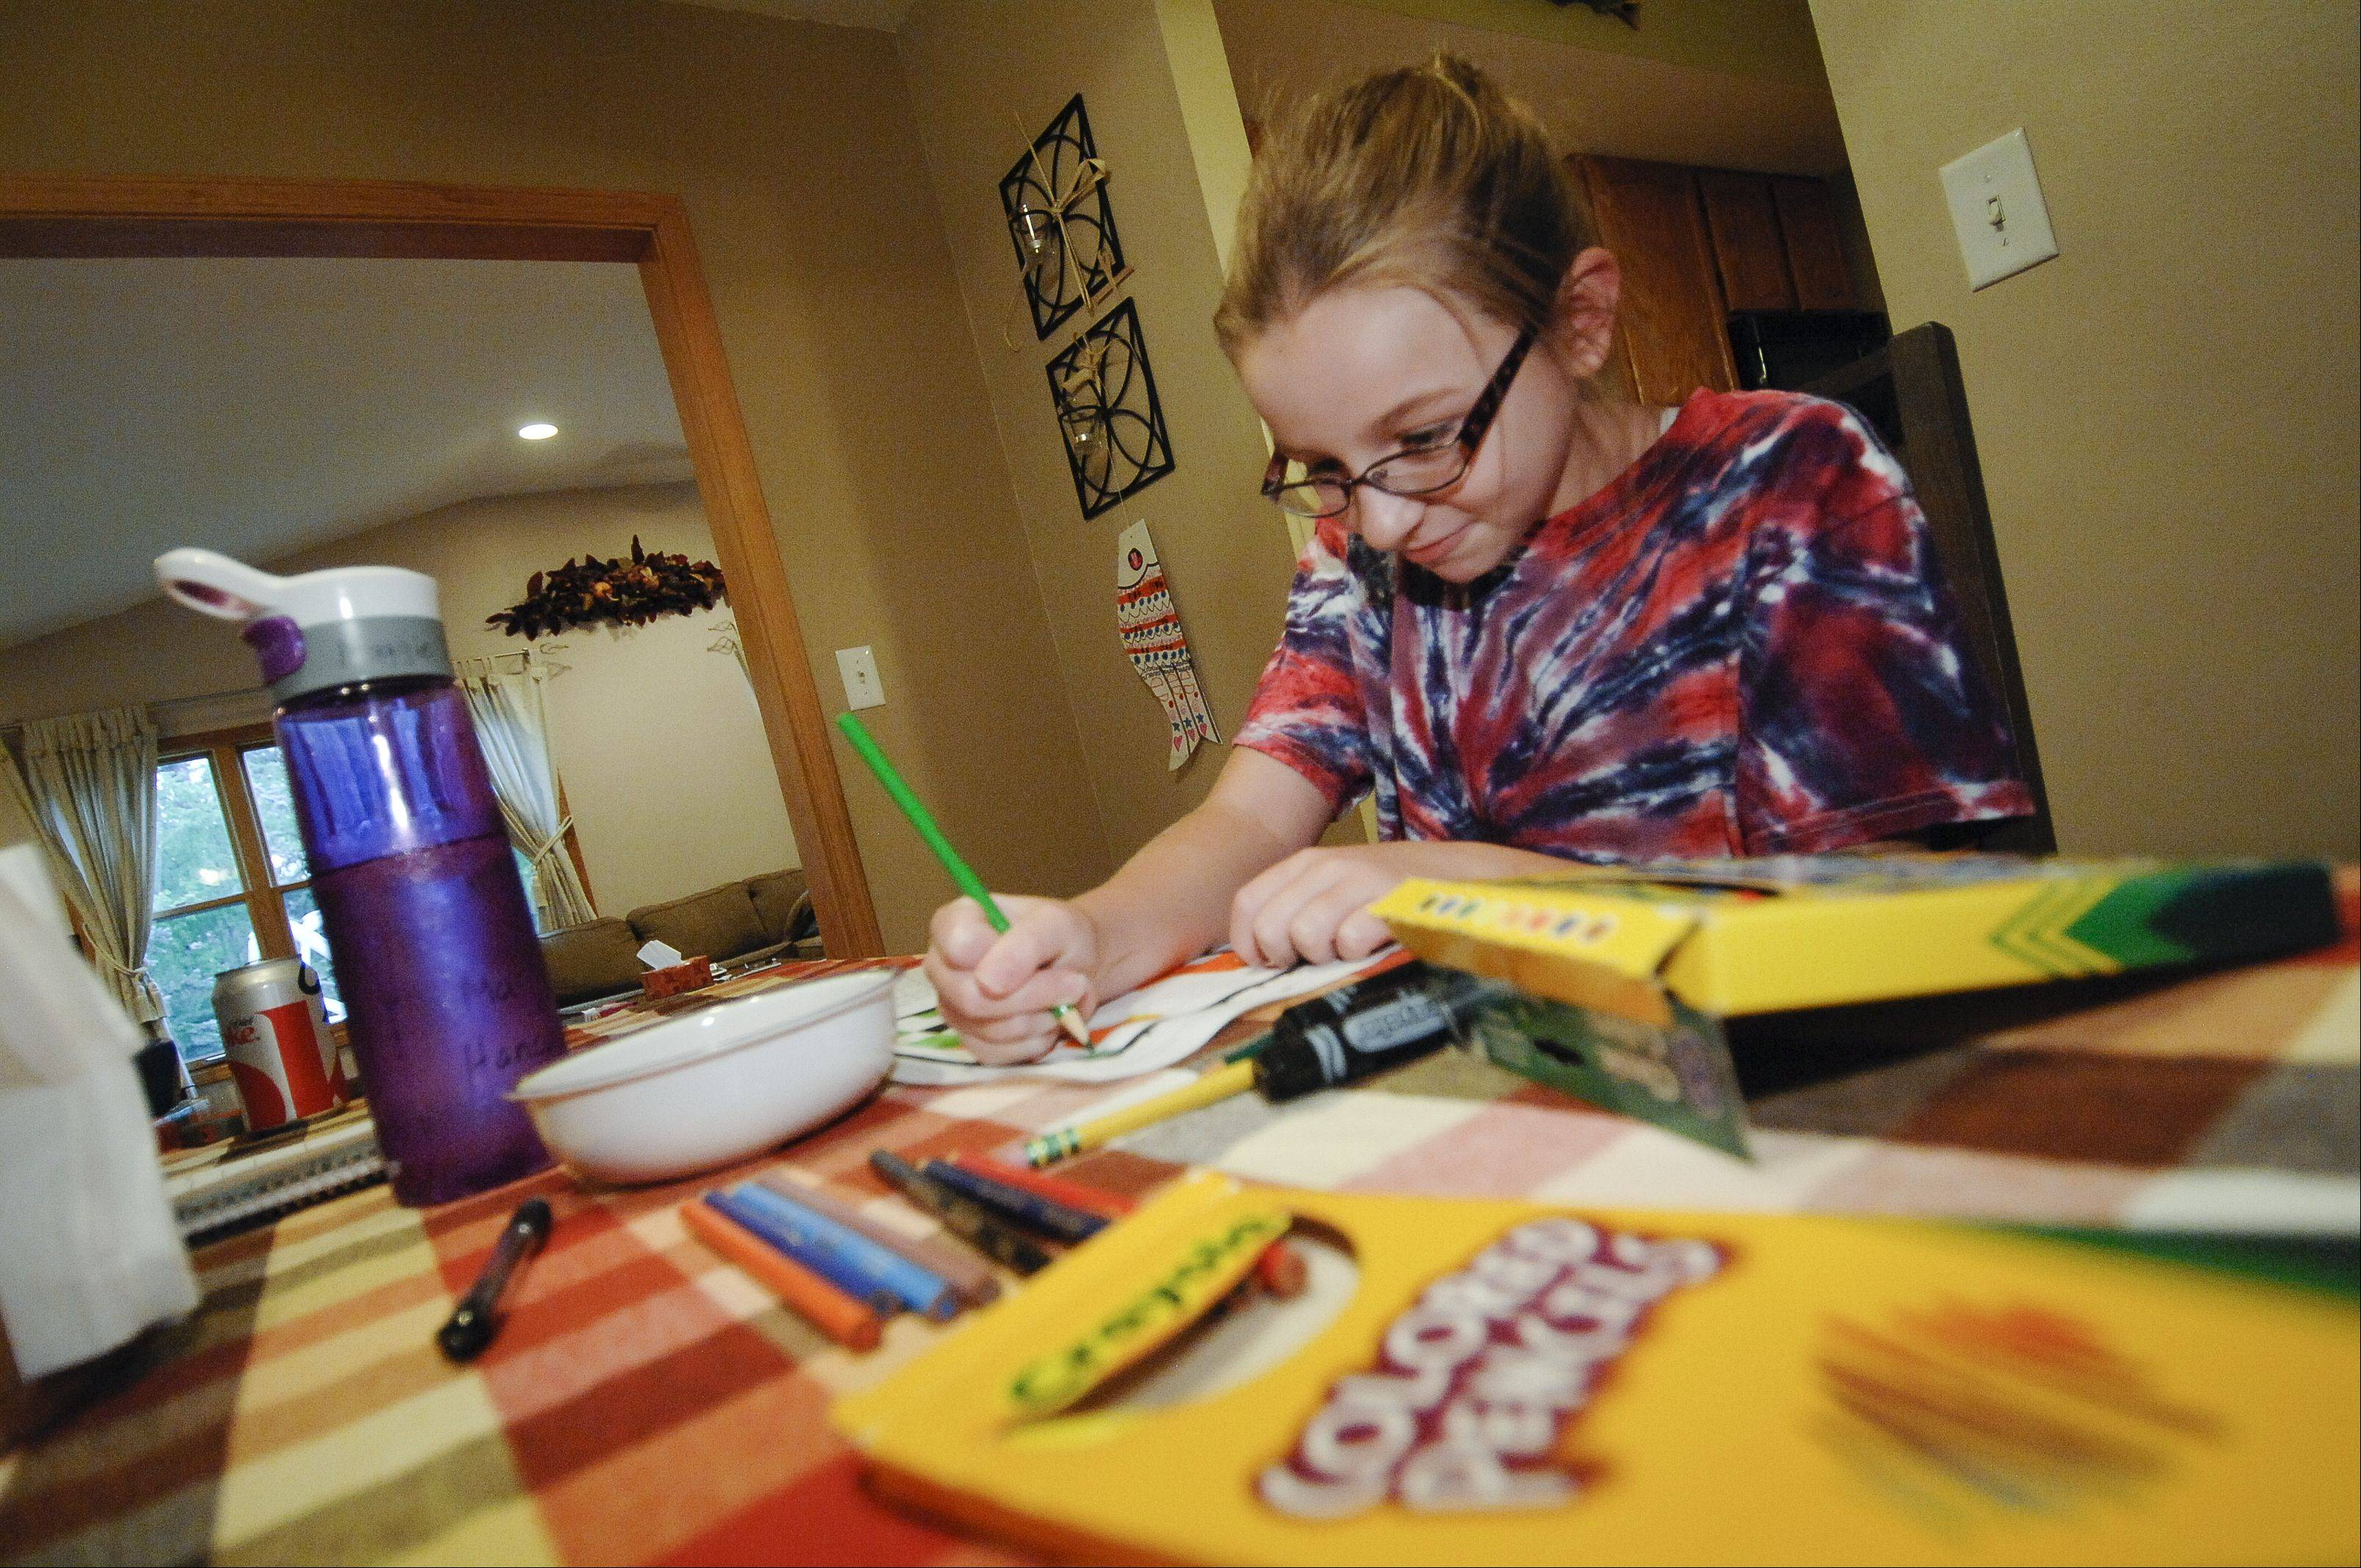 Maggie Hancock, 9, of Carol Stream makes sure to study well to cut down on the stress of taking a test. Test anxiety can be a trigger for nausea for many children.